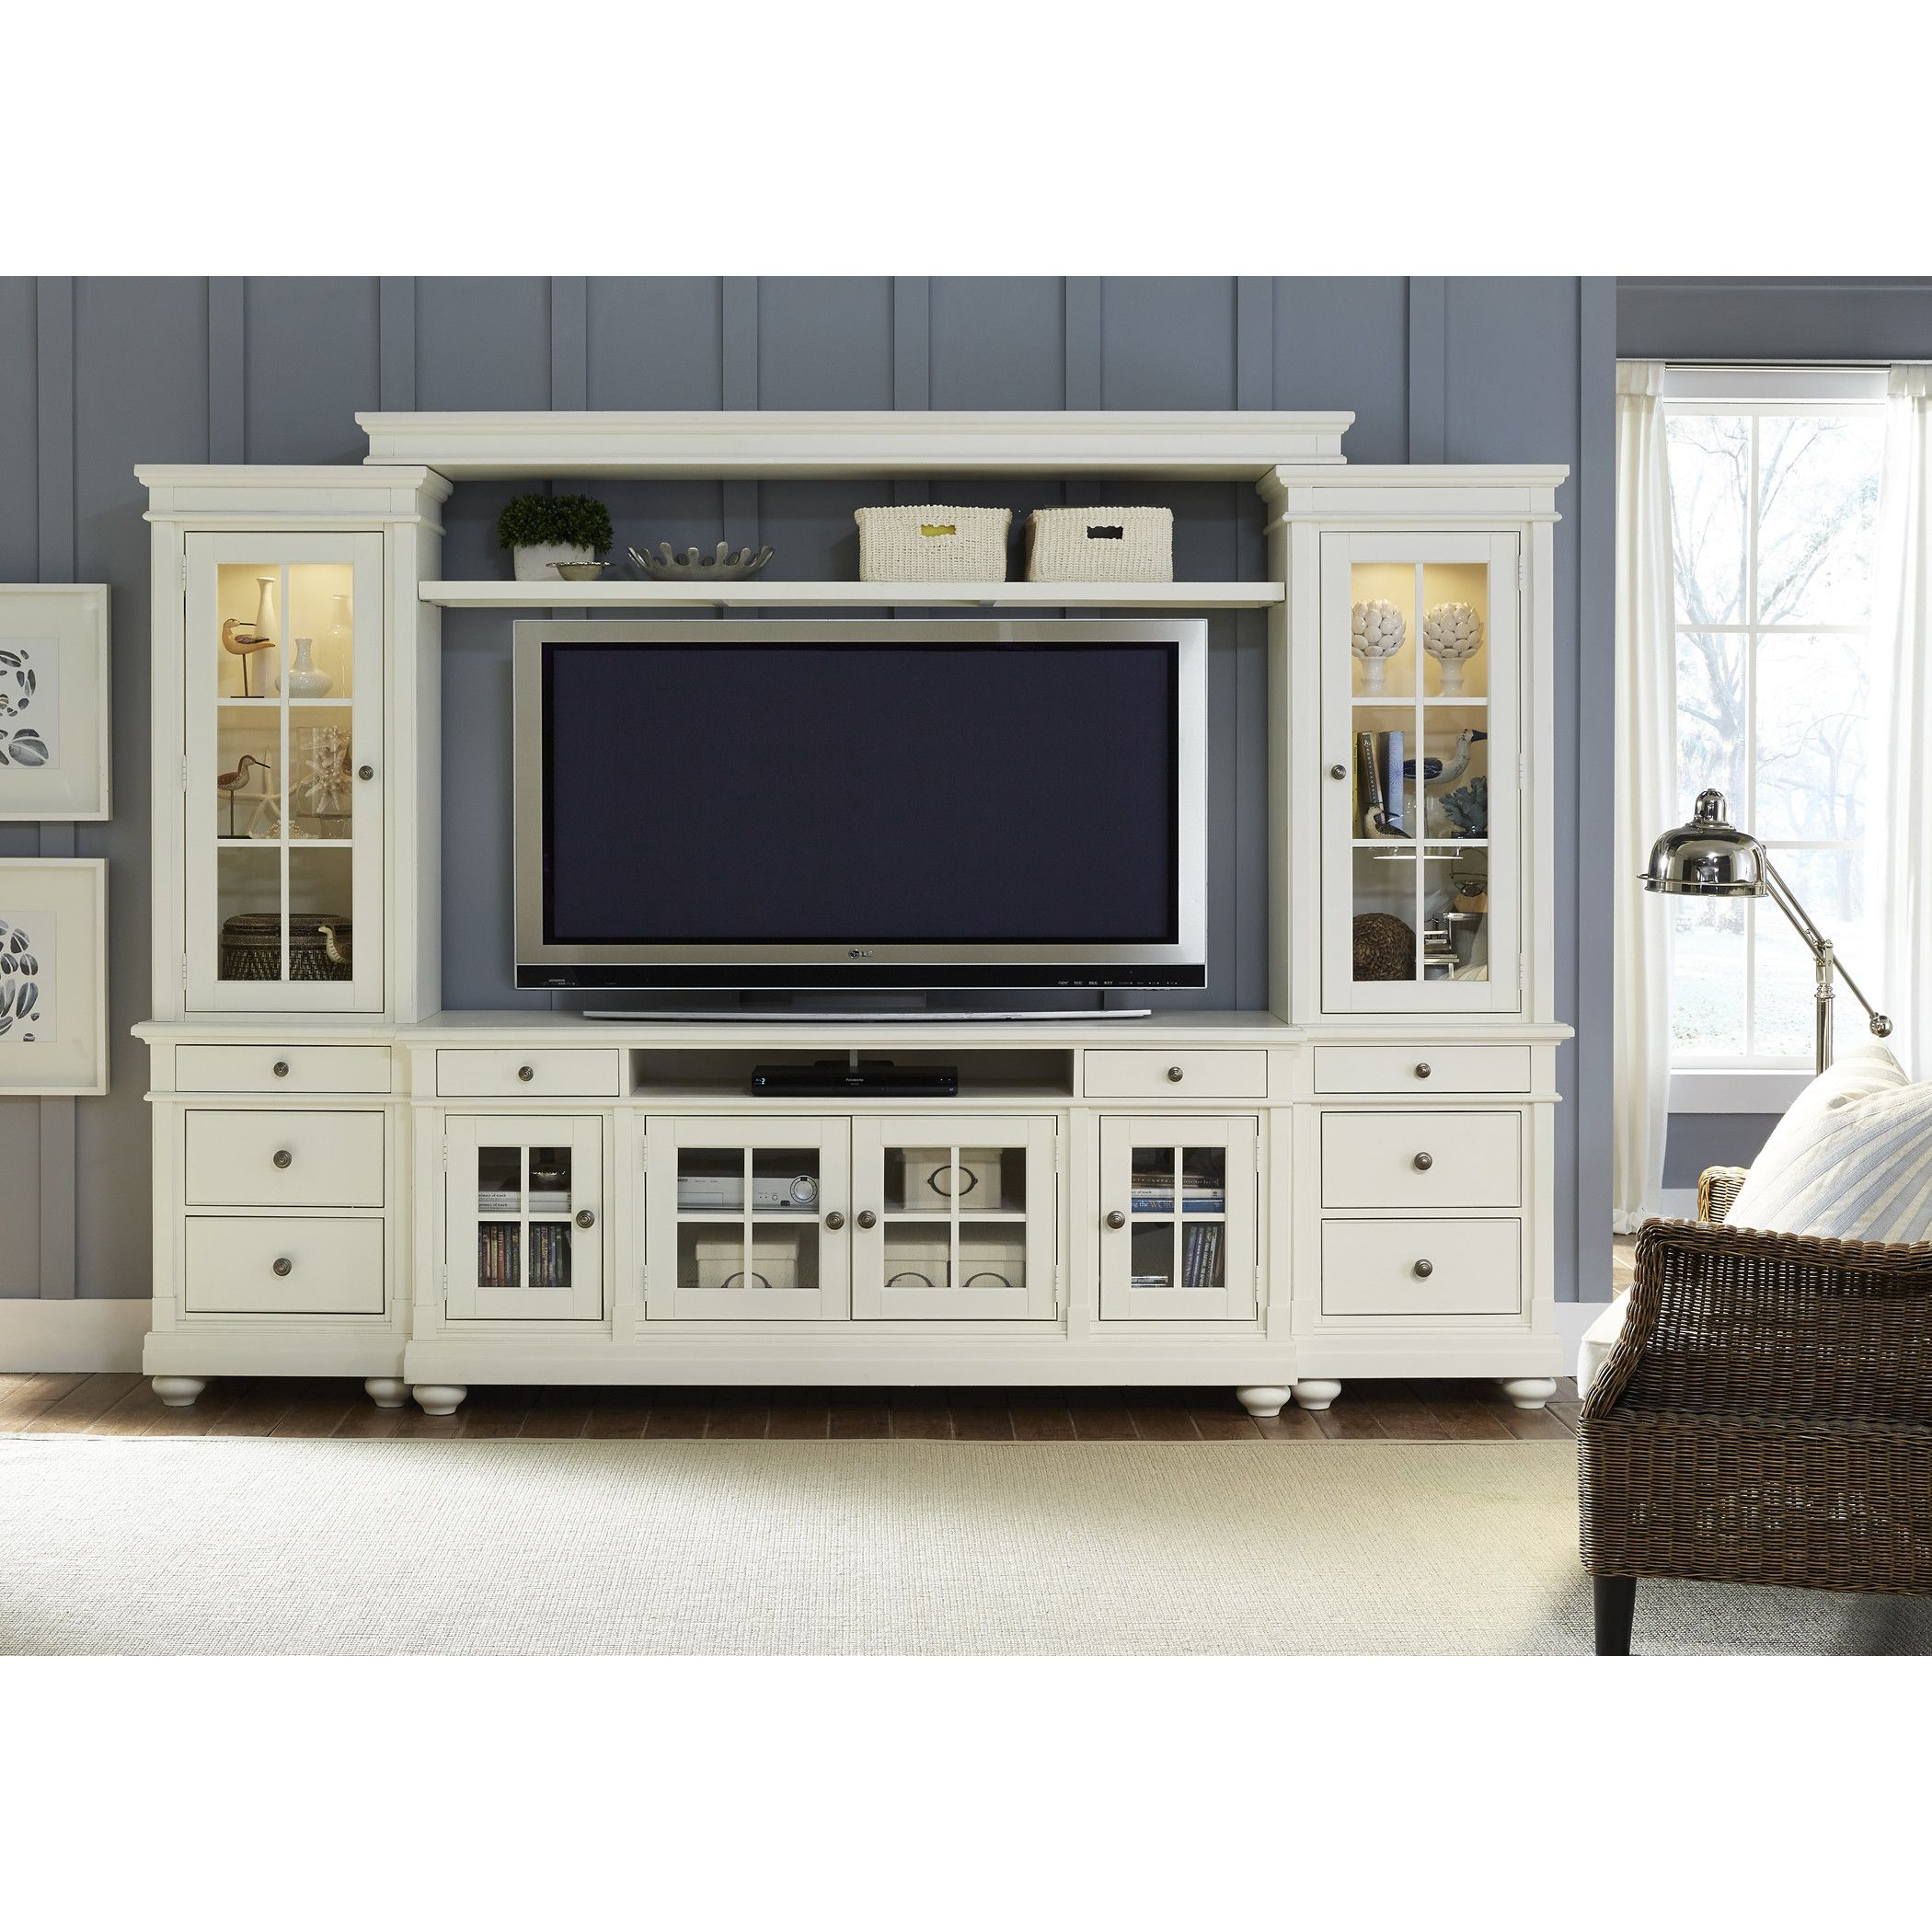 DiyTv entertainment center Diyentertainment center walmart